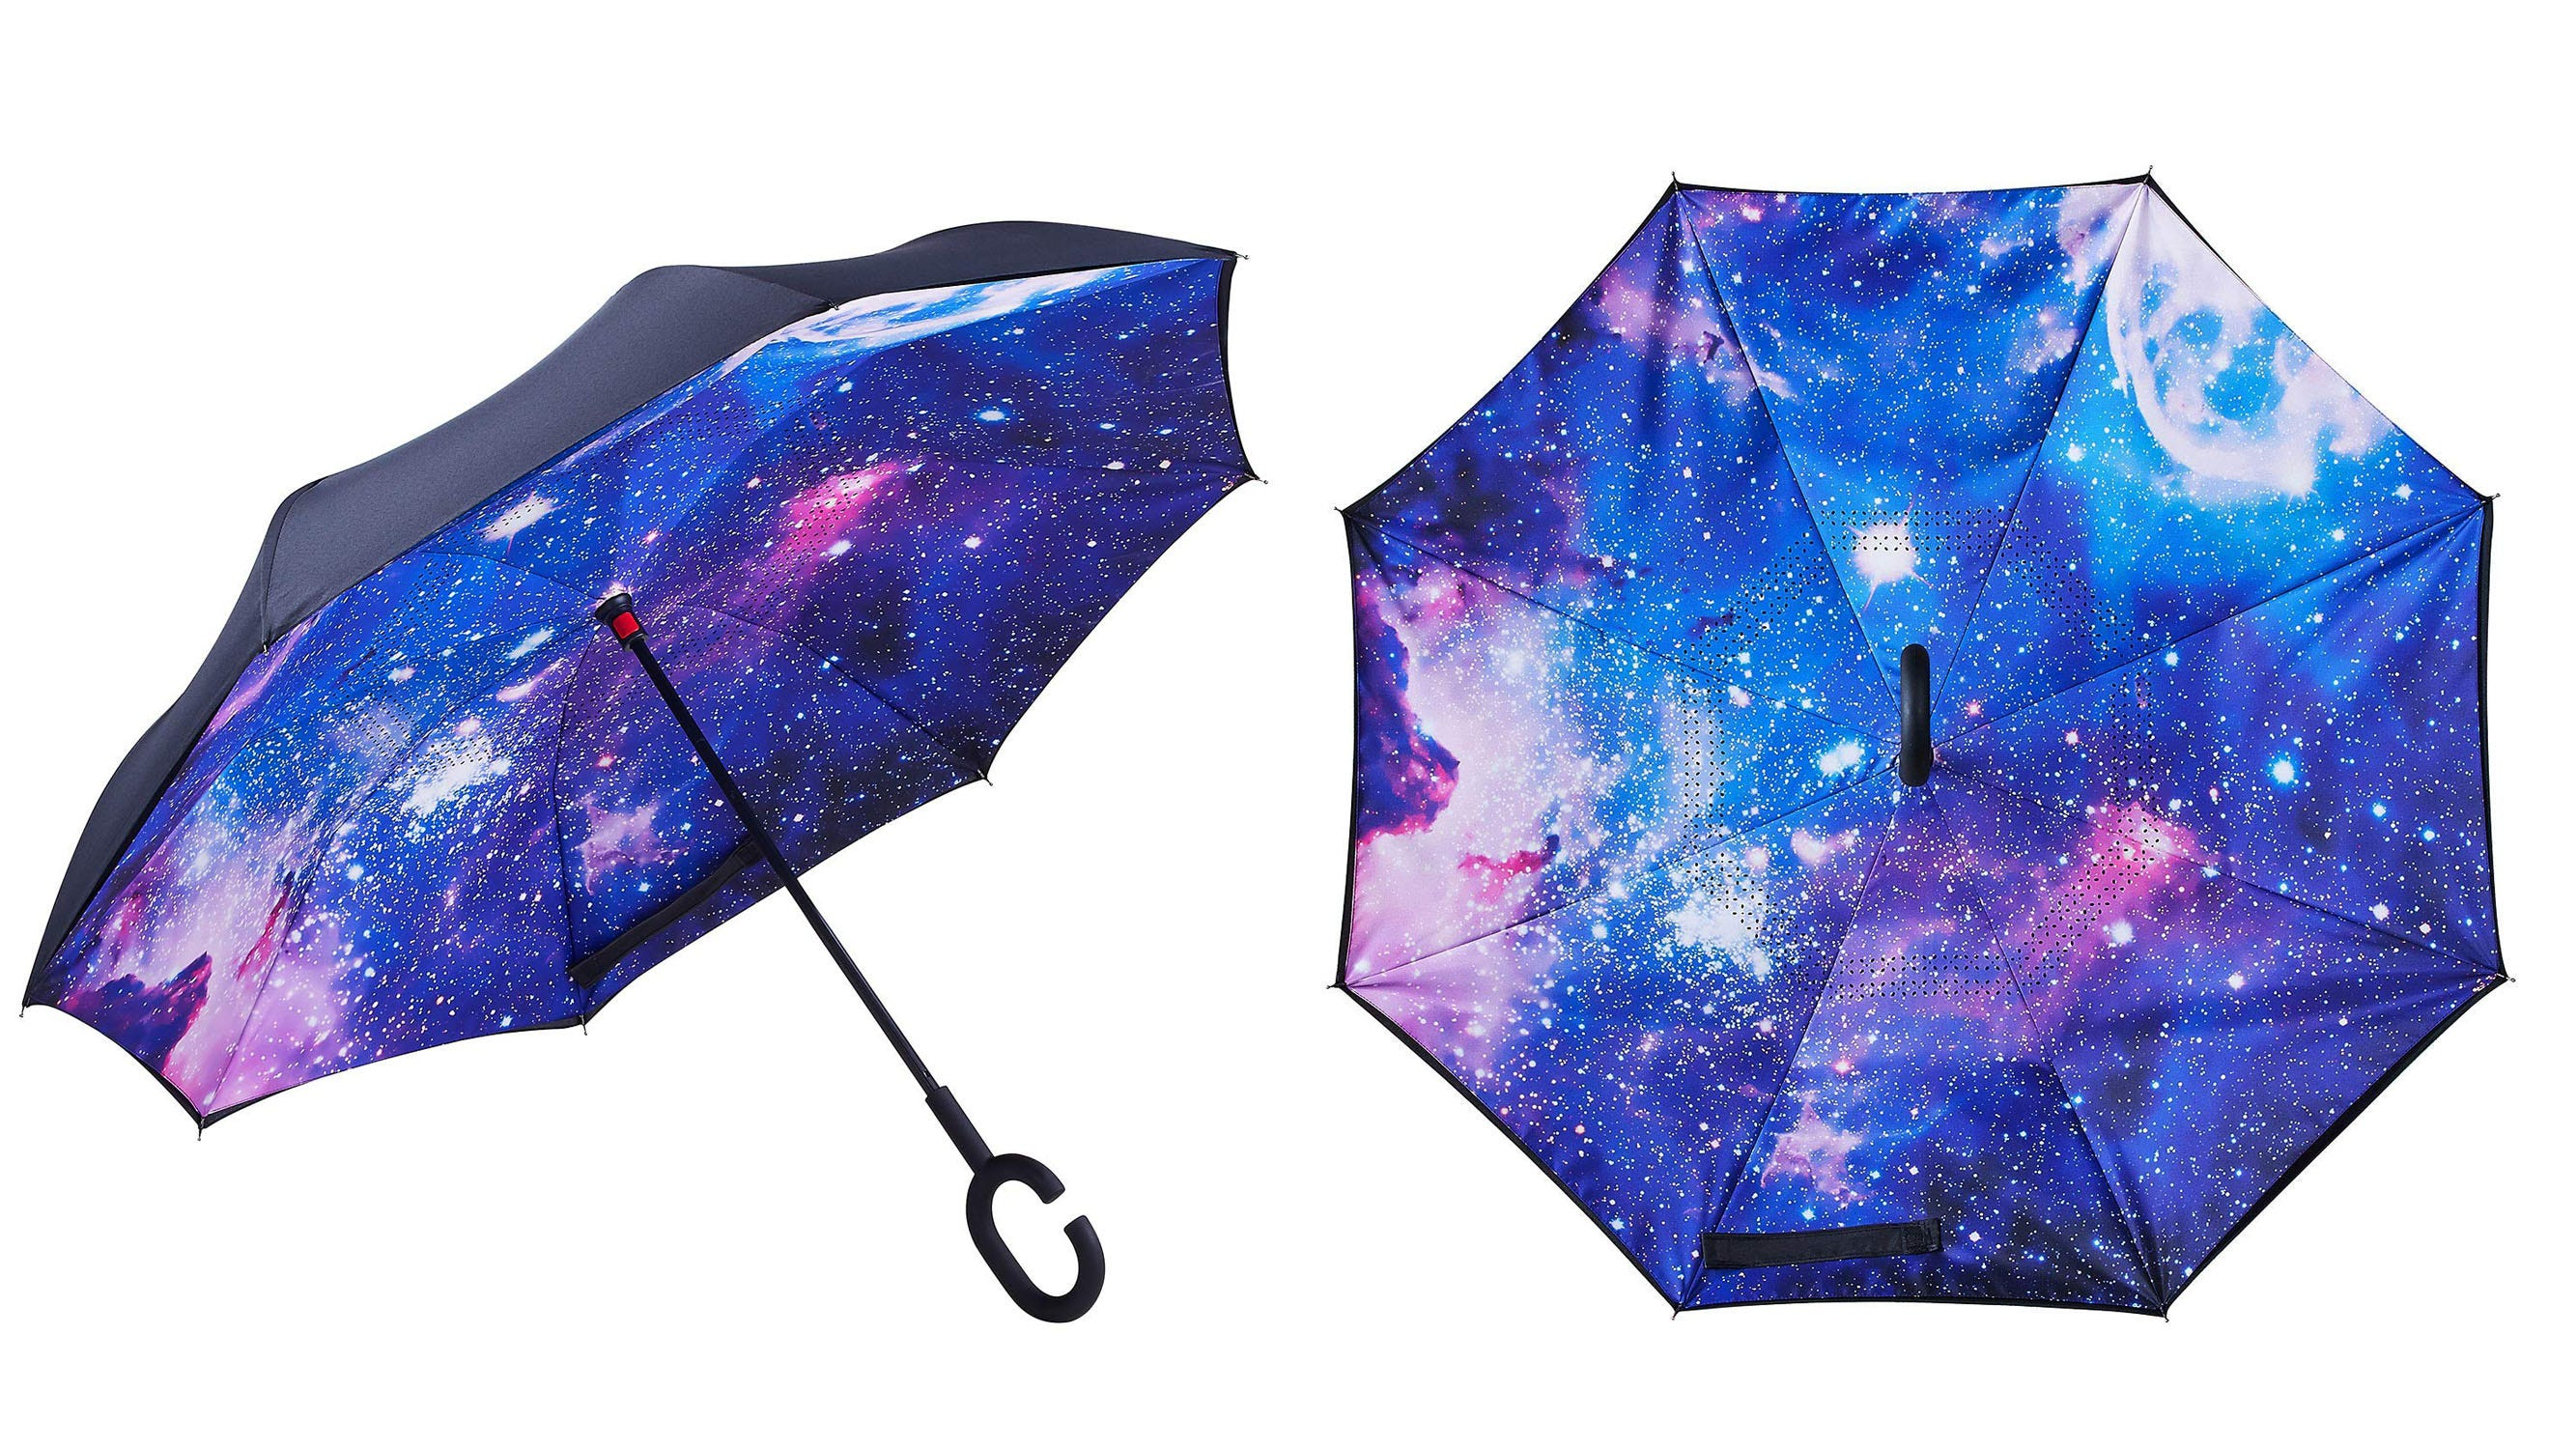 April showers are no hassle at all with this stylish inverted umbrella.